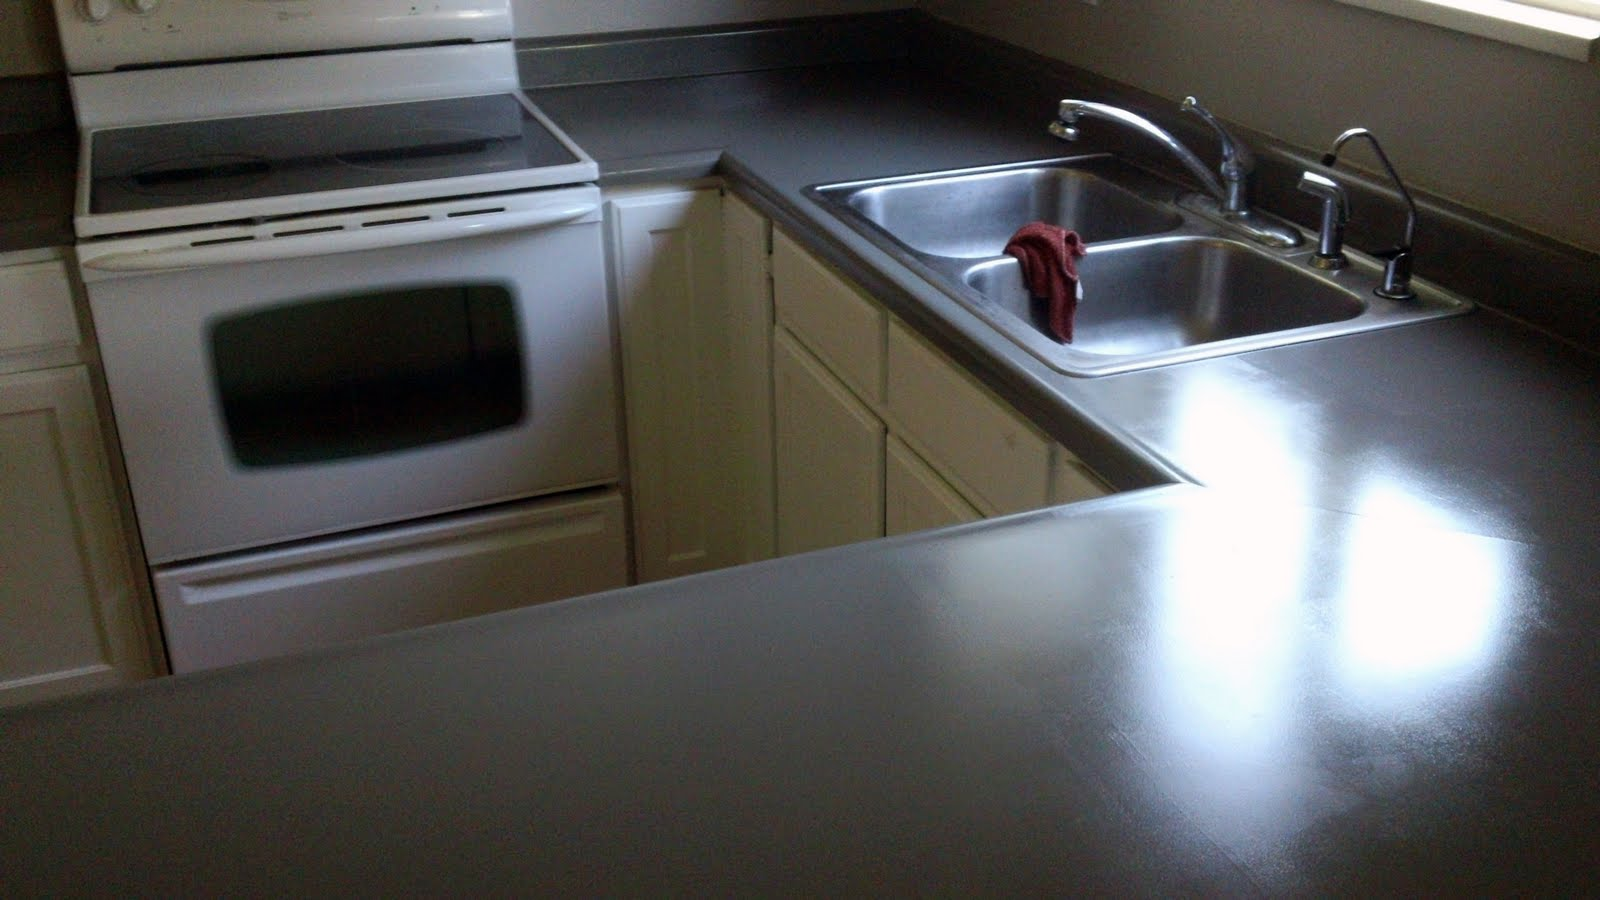 Countertop Paint Colors : Rustoleum?s countertop paint comes in 16 colors. We went with ...